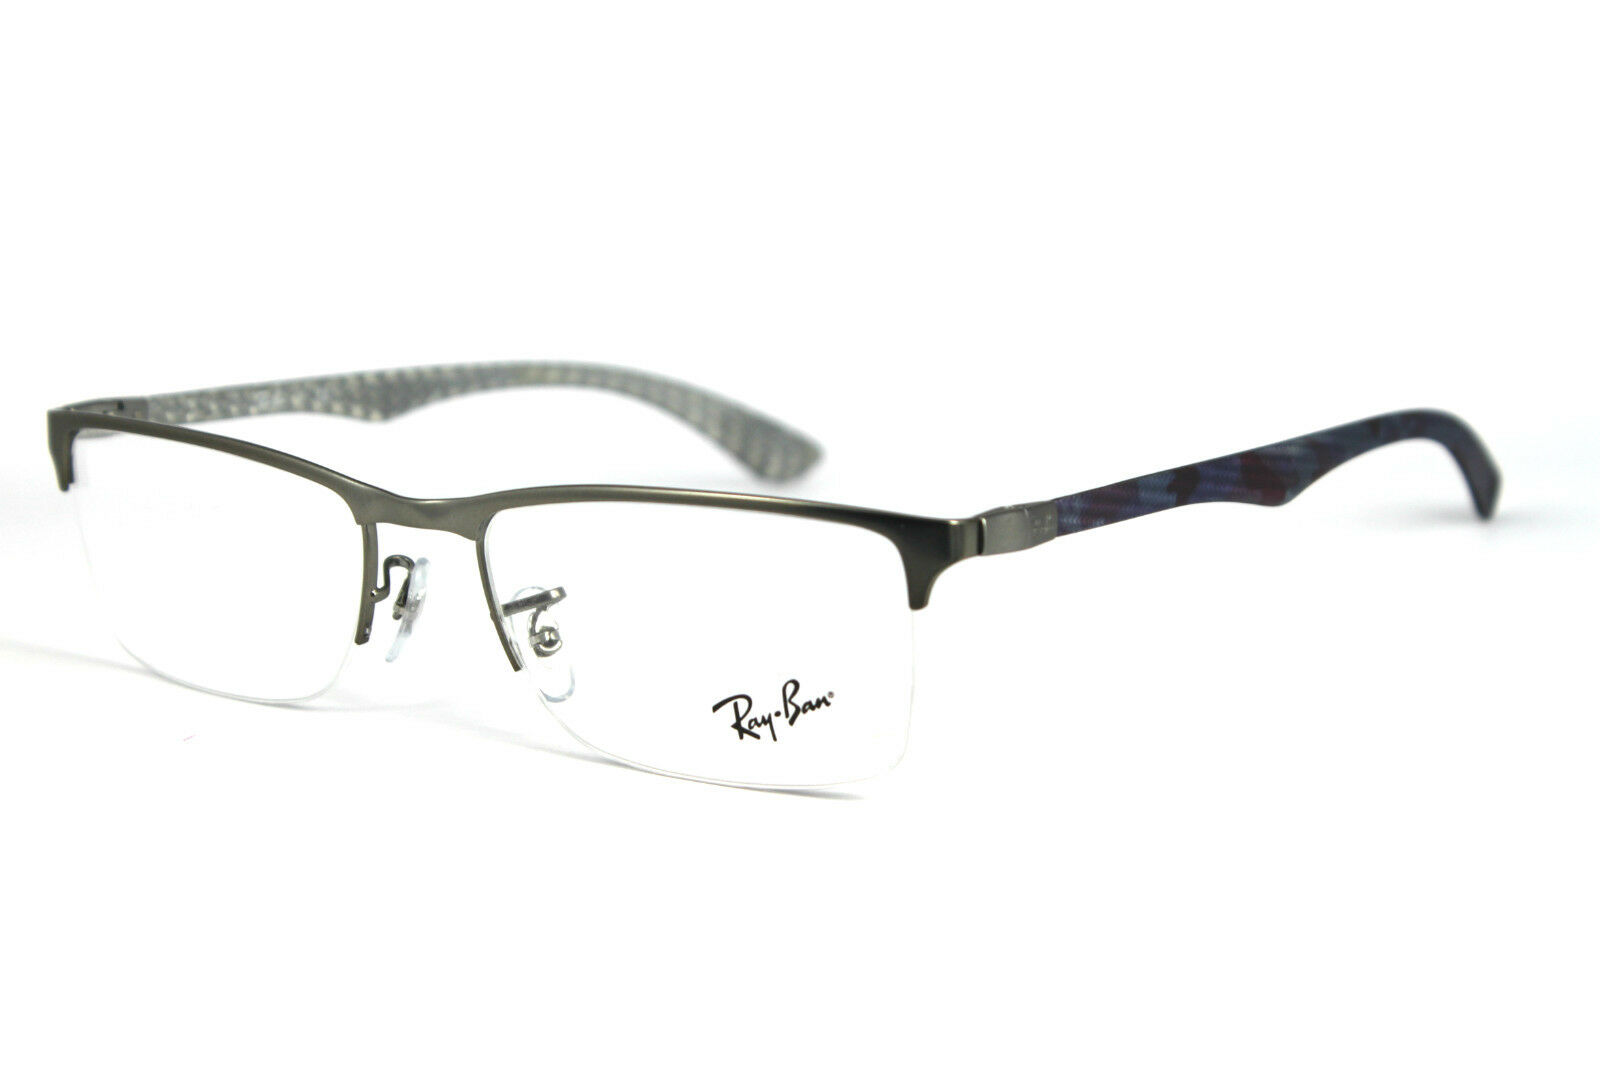 Ray-Ban Fassung / Glasses RB8413 2851 Gr. 54 Insolvenzware # 133 (26 ...